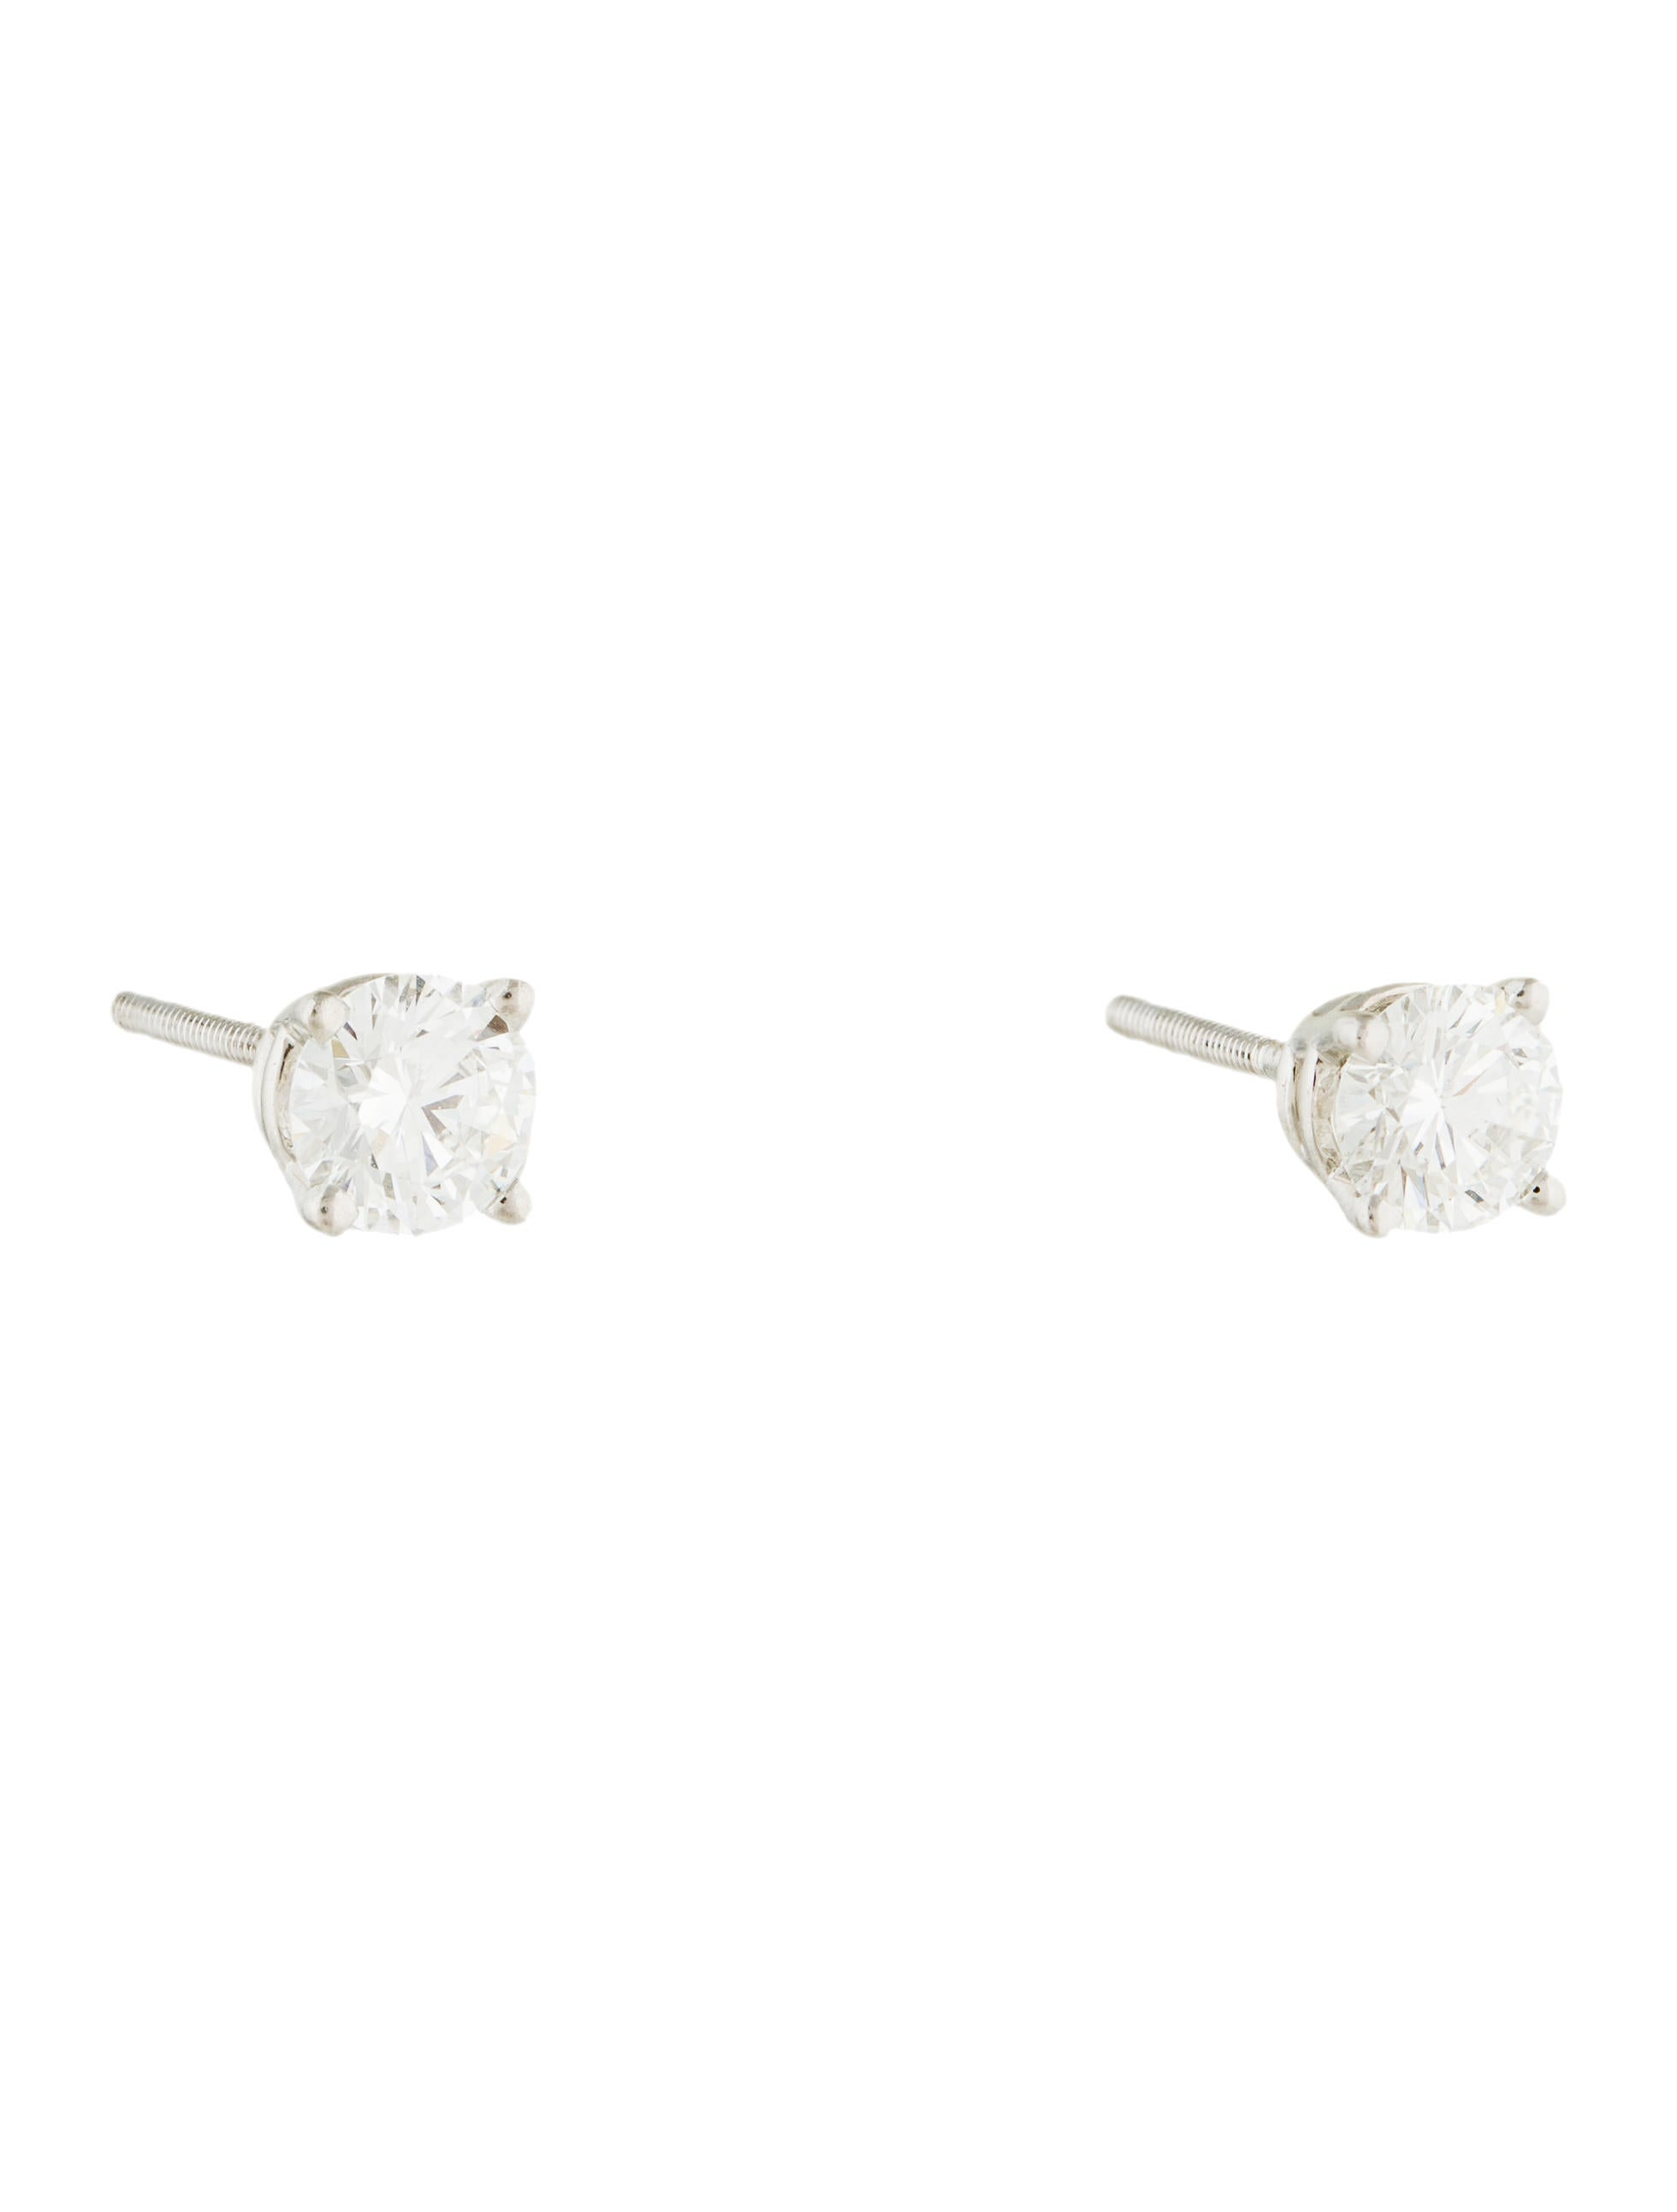 gold jewellery set in claw round brilliant stud white studs solitaire diamond earrings platinum